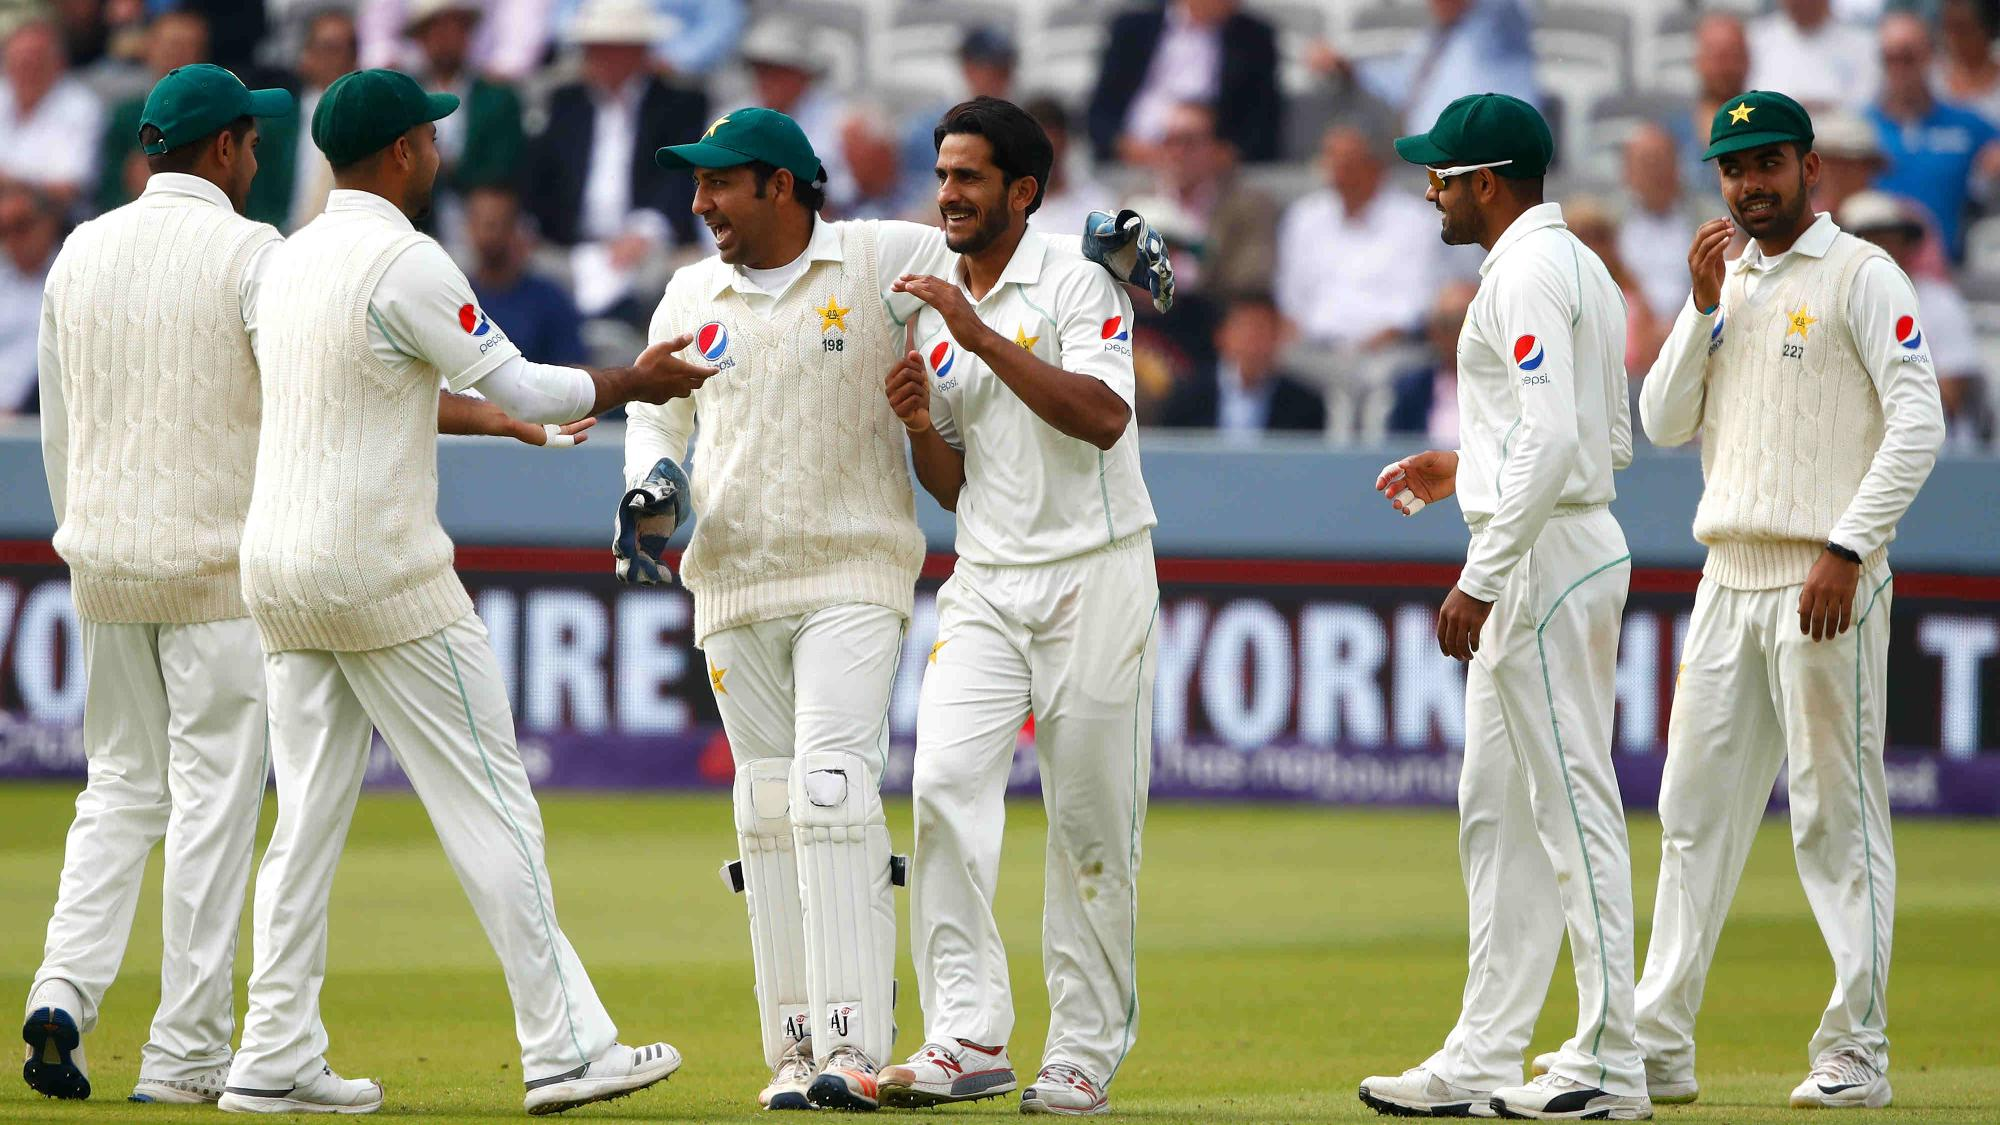 Sticking to line and length does the trick for Hasan Ali